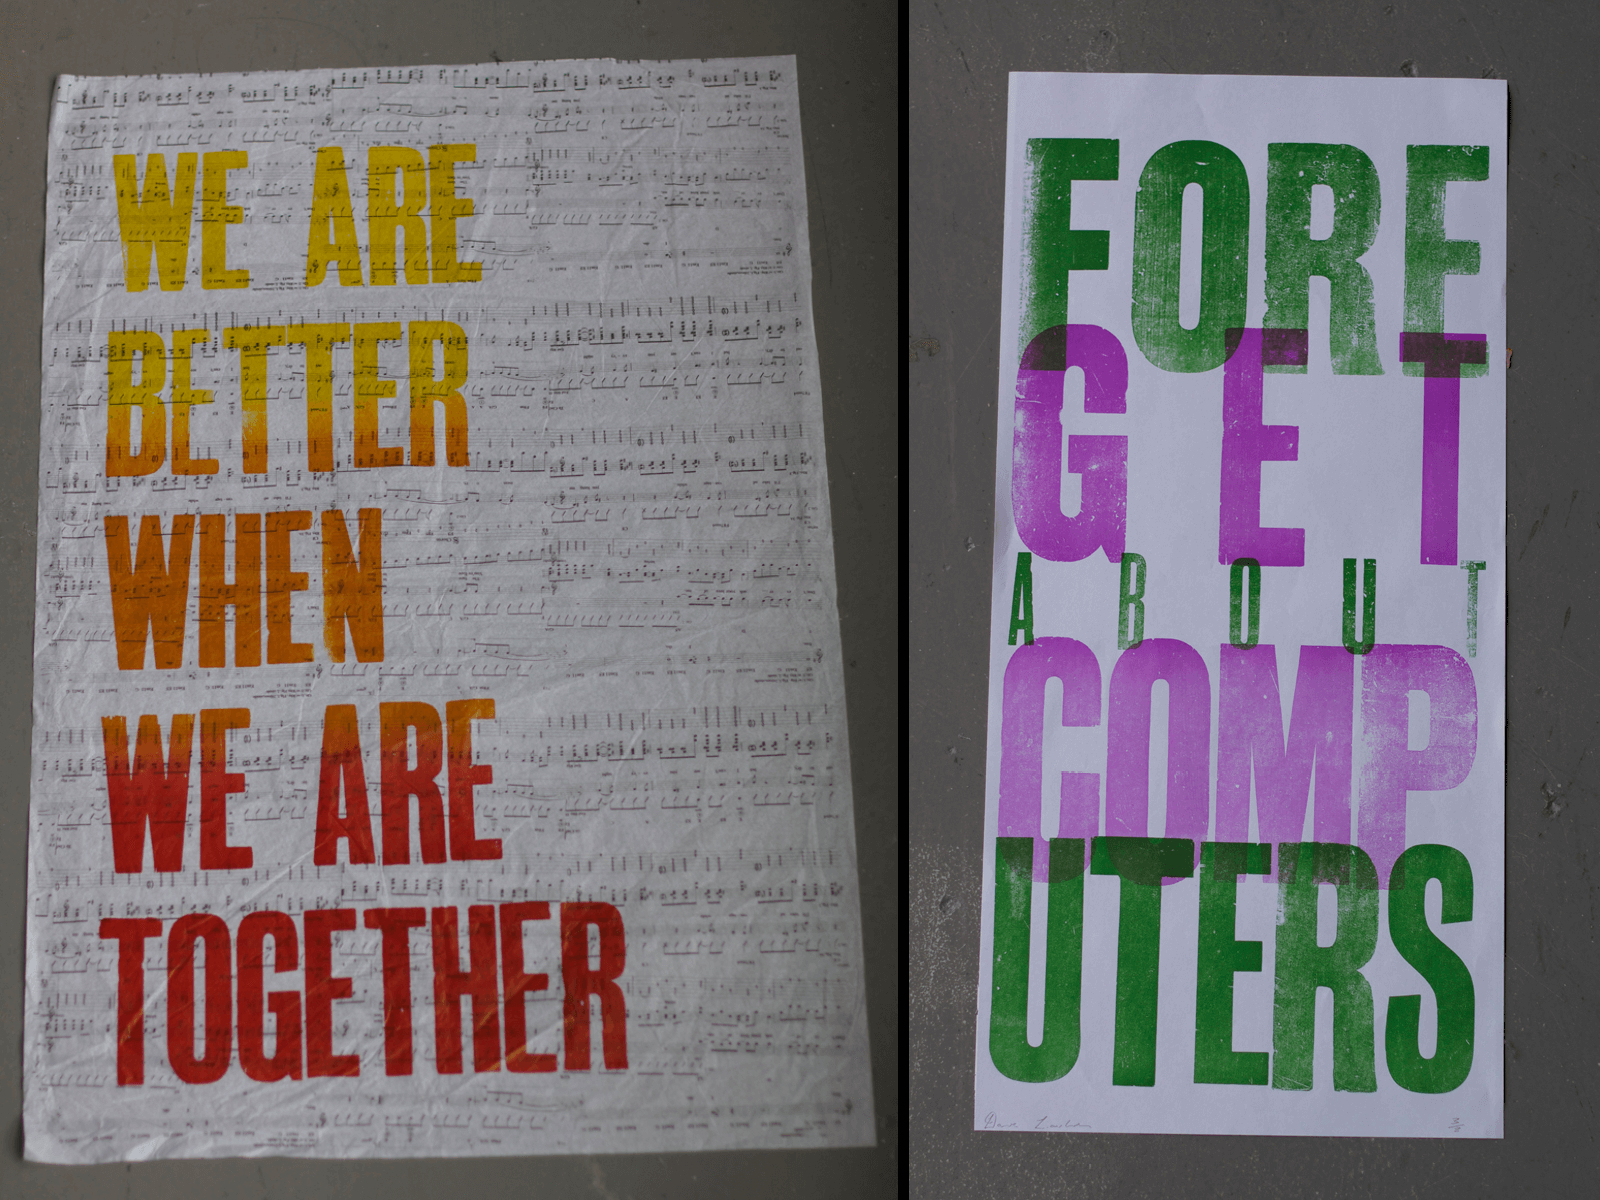 Various Letterpress Posters, Printed at Distillars Press at the National Colledge of Art and Design, Dublin.